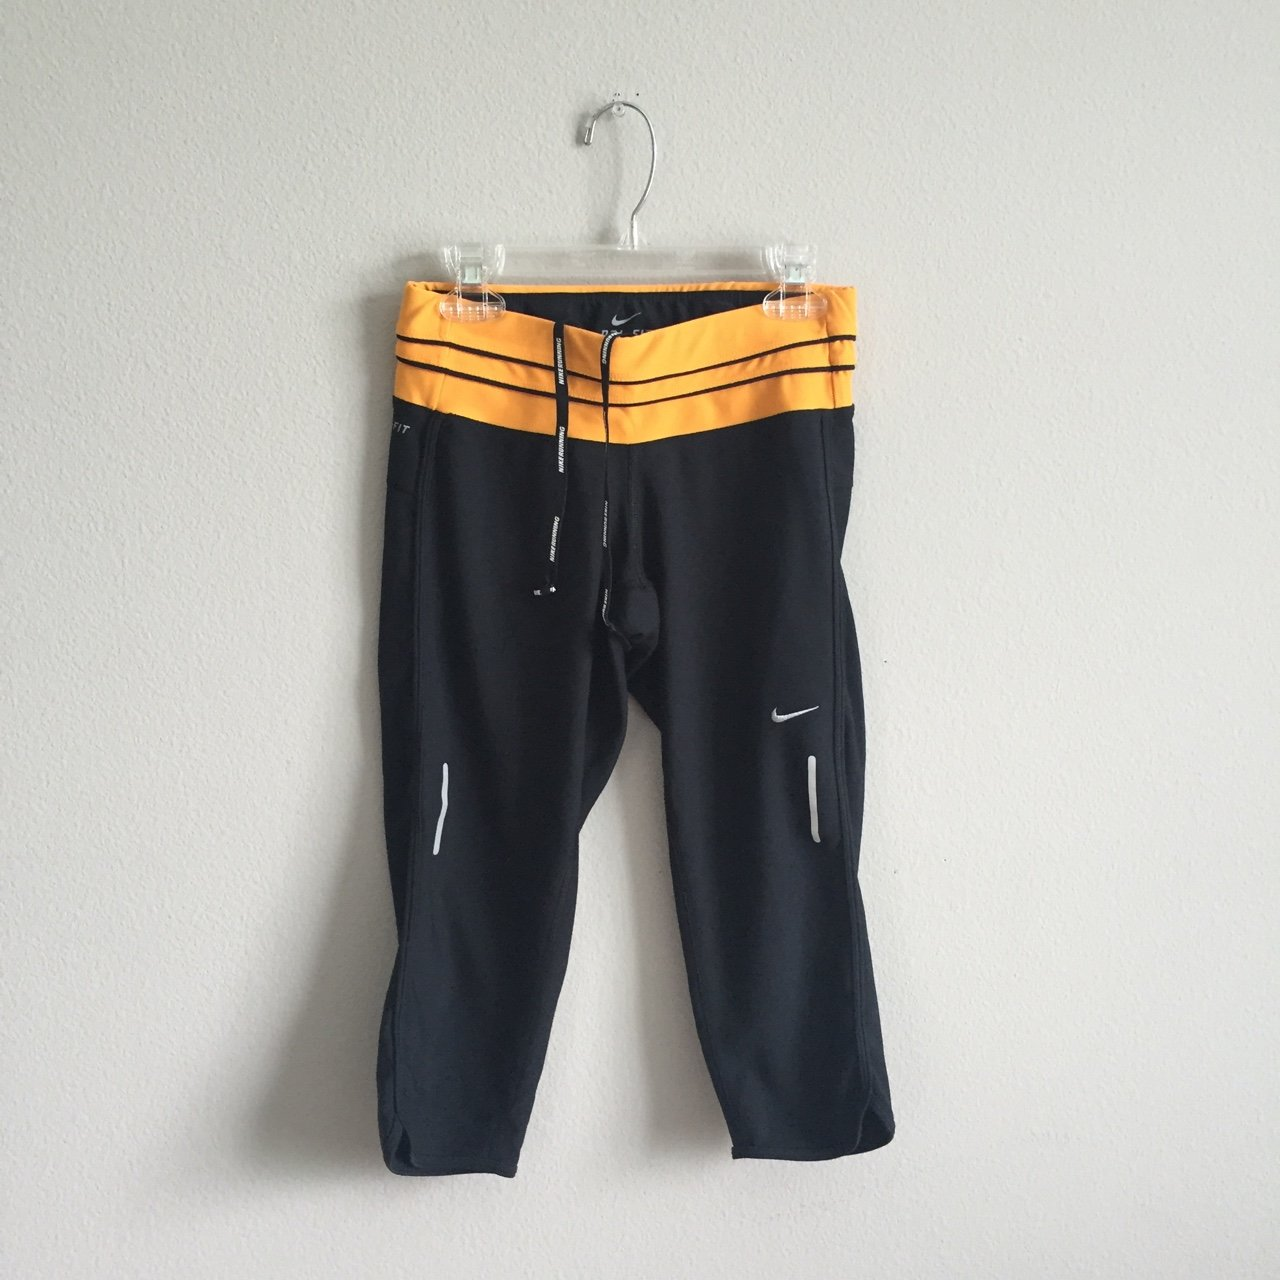 f1e007959fc6 Nike capri workout bottoms - Depop